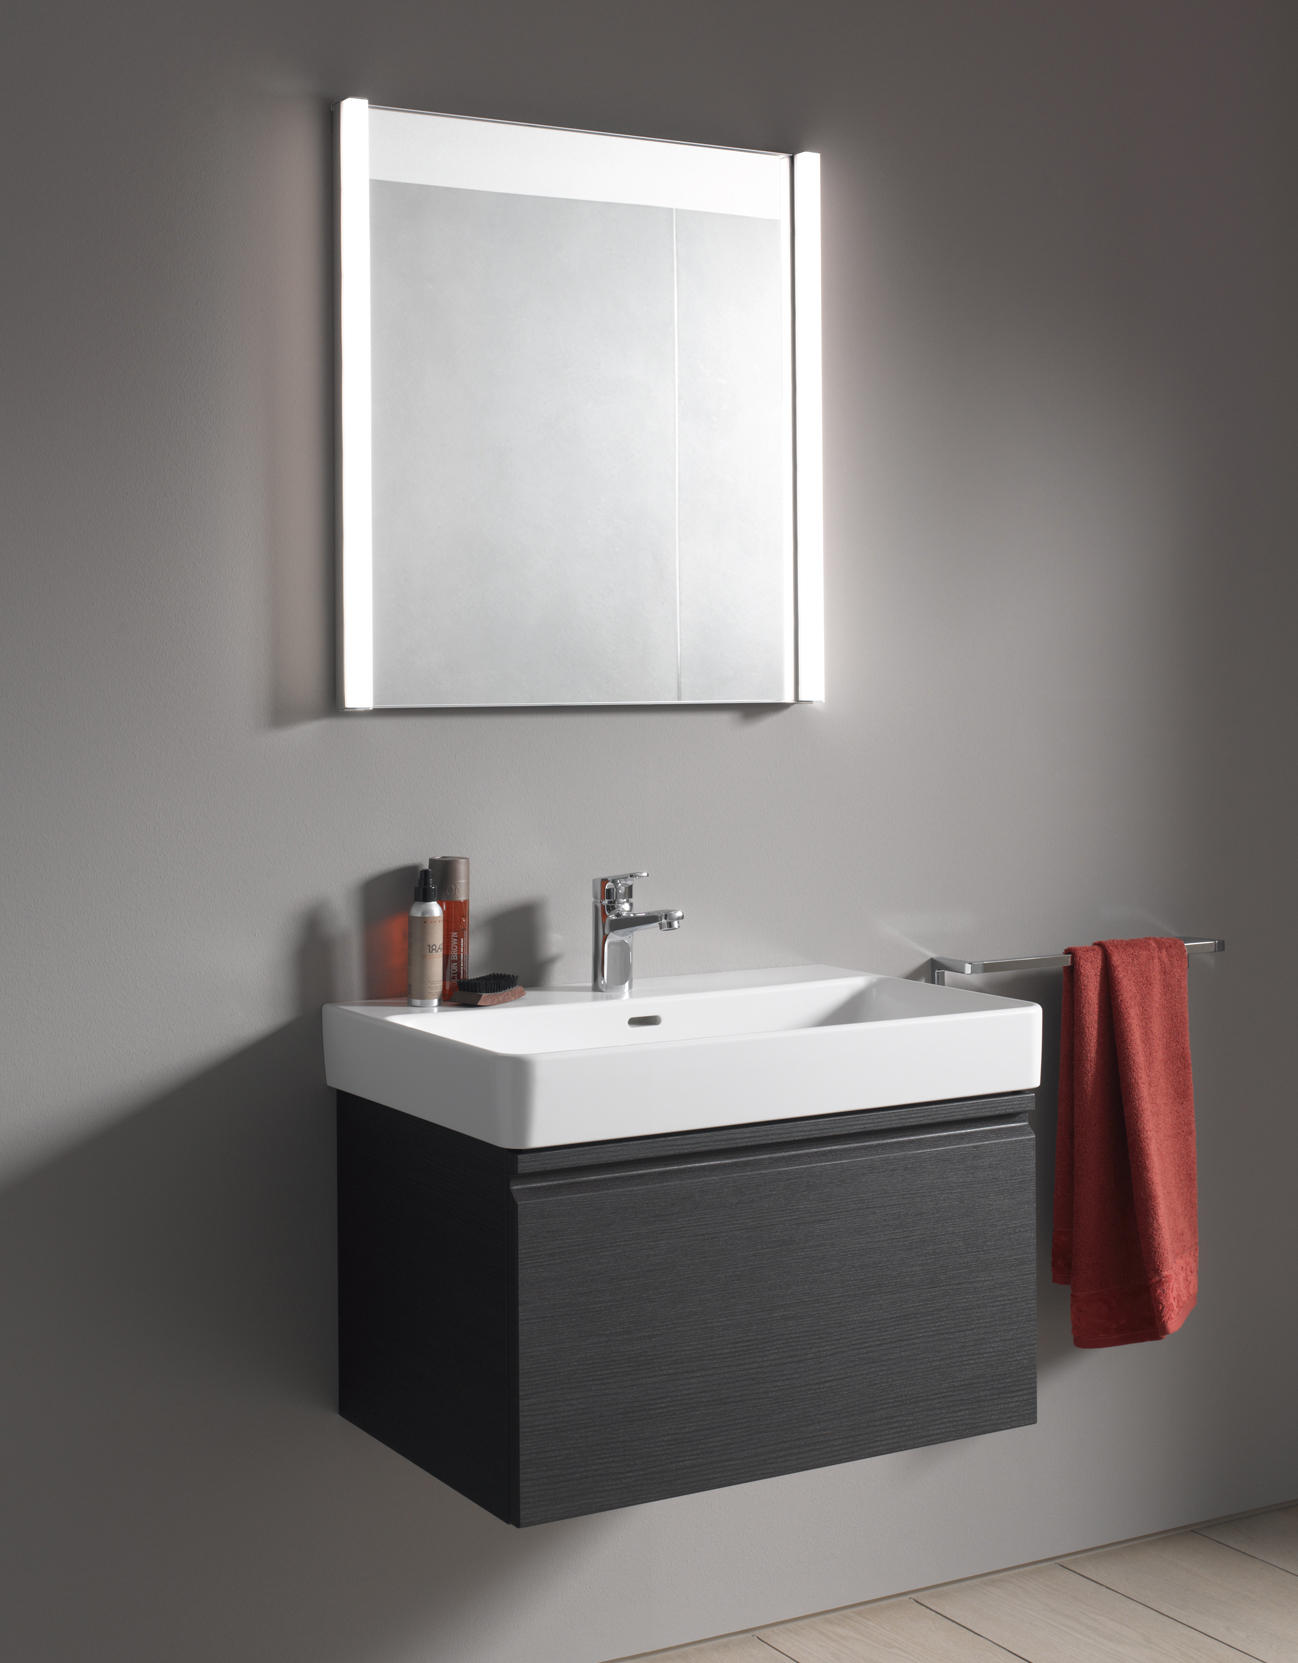 laufen pro s meuble sous lavabo meubles sous lavabo de. Black Bedroom Furniture Sets. Home Design Ideas